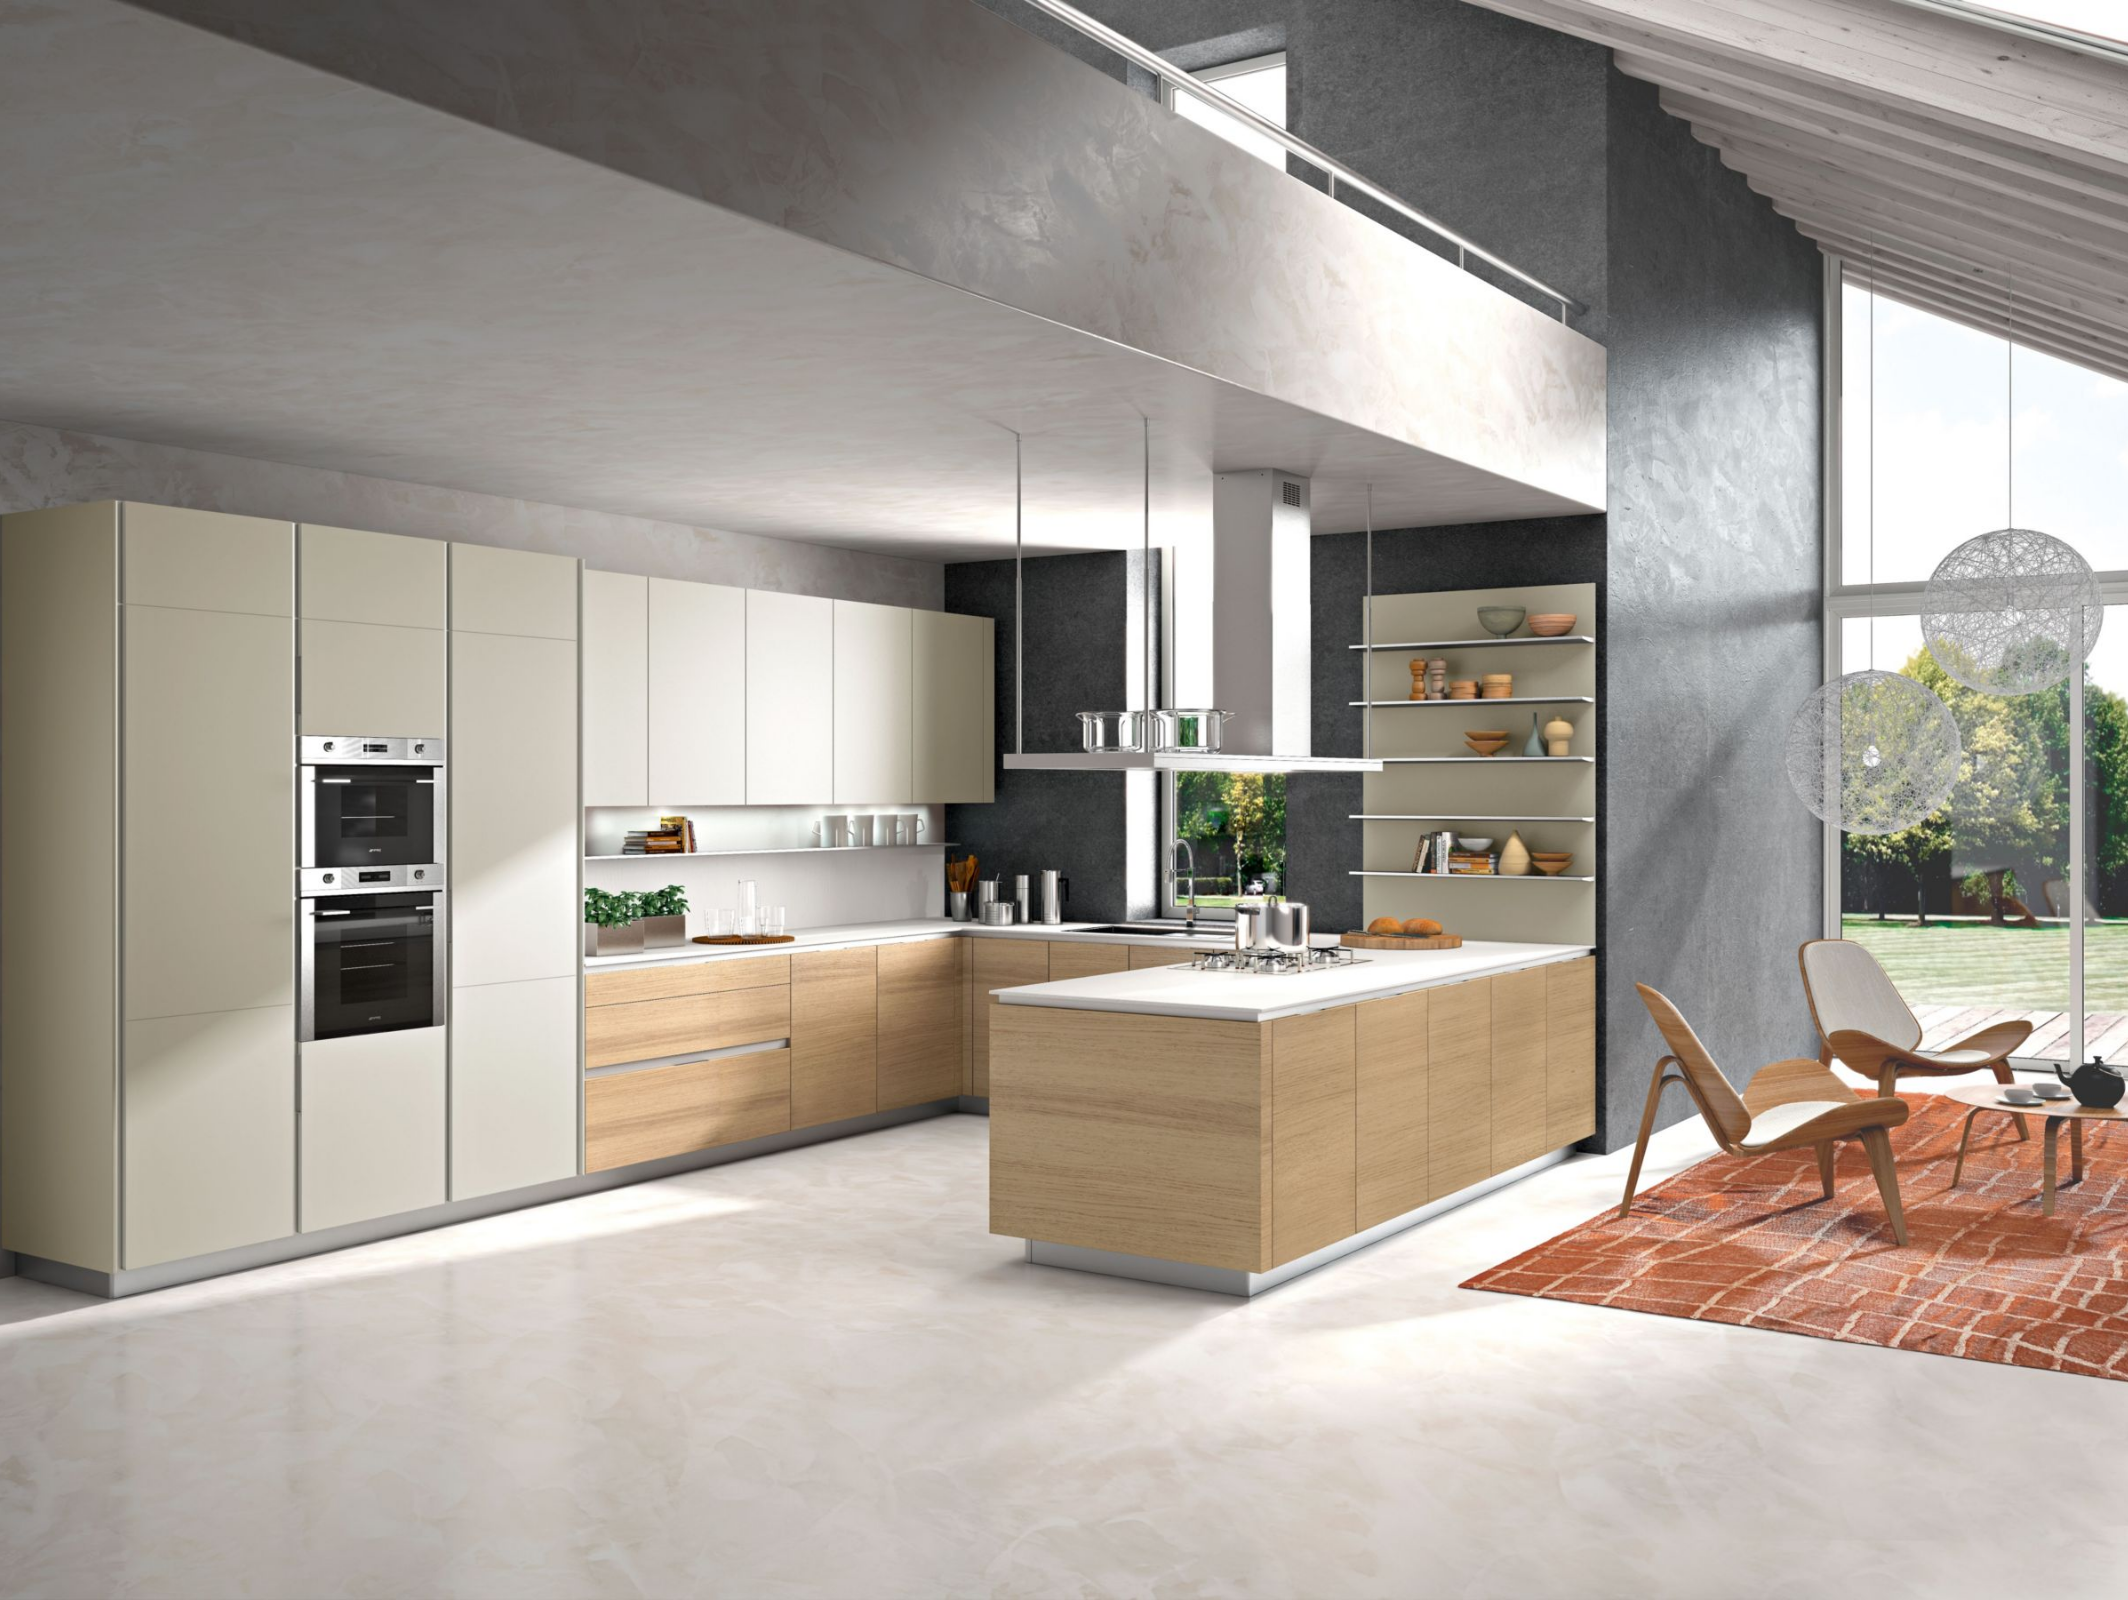 High Style And Sophistication Are The Trademarks Of This Kitchen By Snaidero Usa Los Angeles Italian Kitchen Design Modern Kitchen Contemporary Kitchen